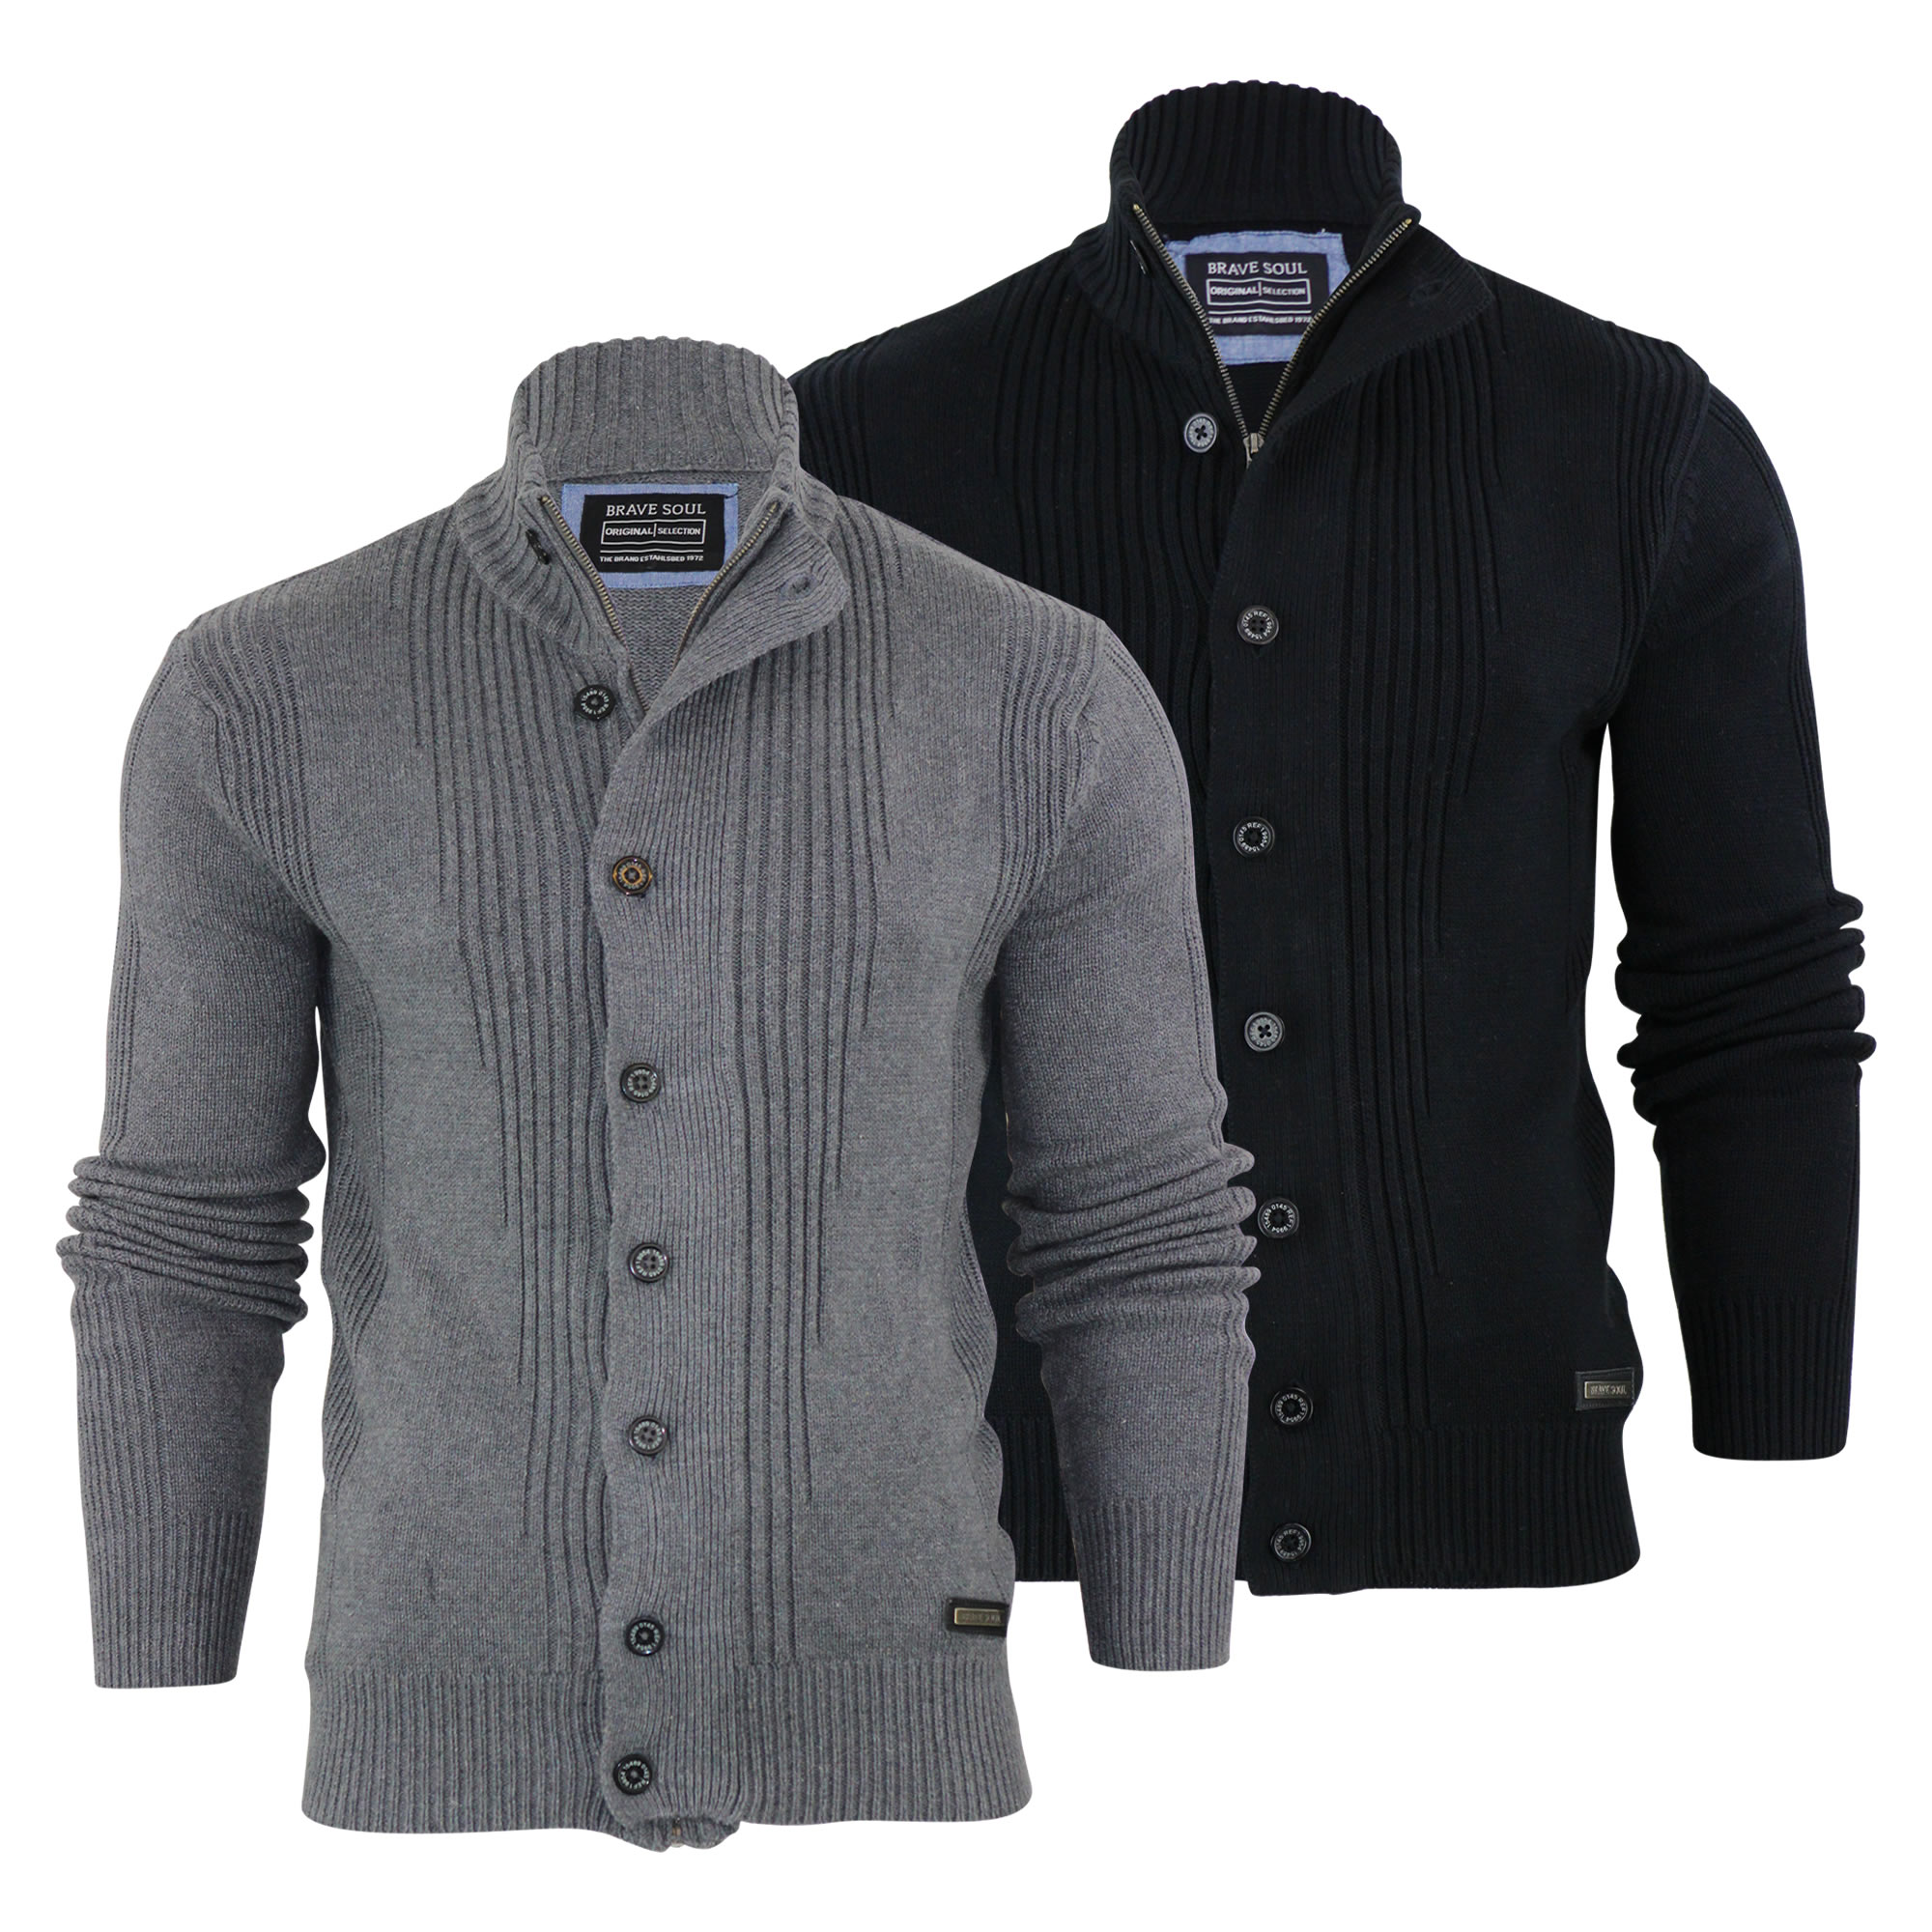 Mens Button Up Cardigan Sweater - Gray Cardigan Sweater